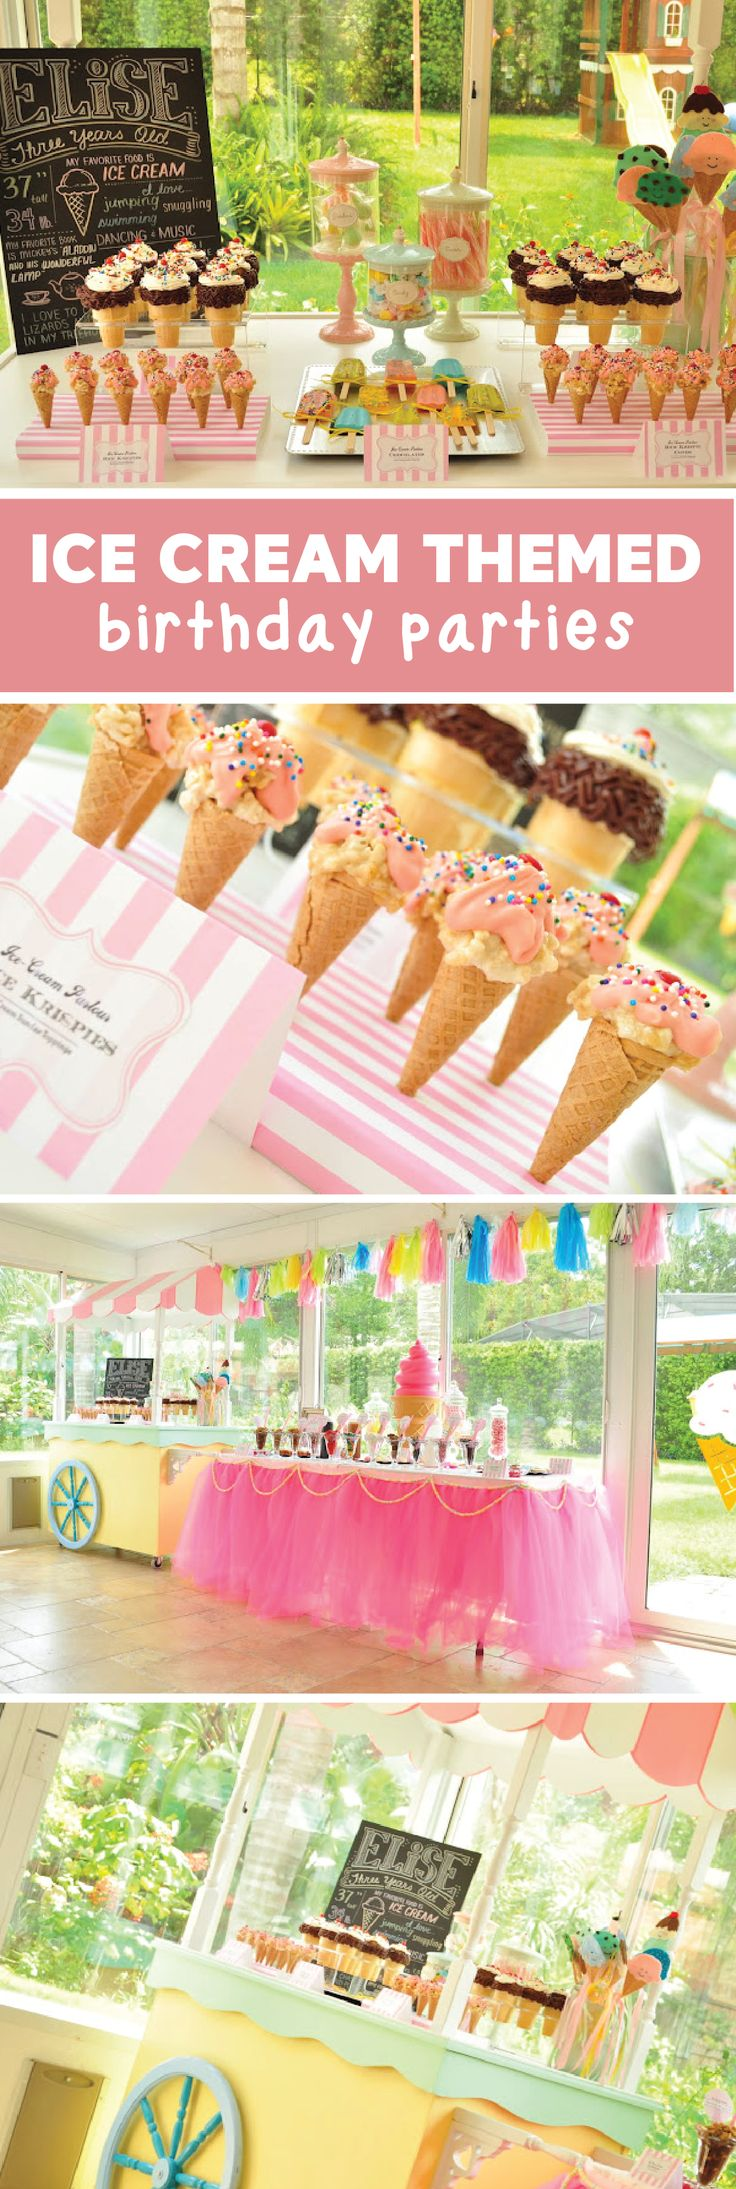 When you think of adorable party decor, this Ice Cream Themed Birthday Party has everything your little girl could dream of—from an ice cream bar outfitted with her favorite Edy's Slow Churned light ice cream flavors to ice cream balloon decorations.